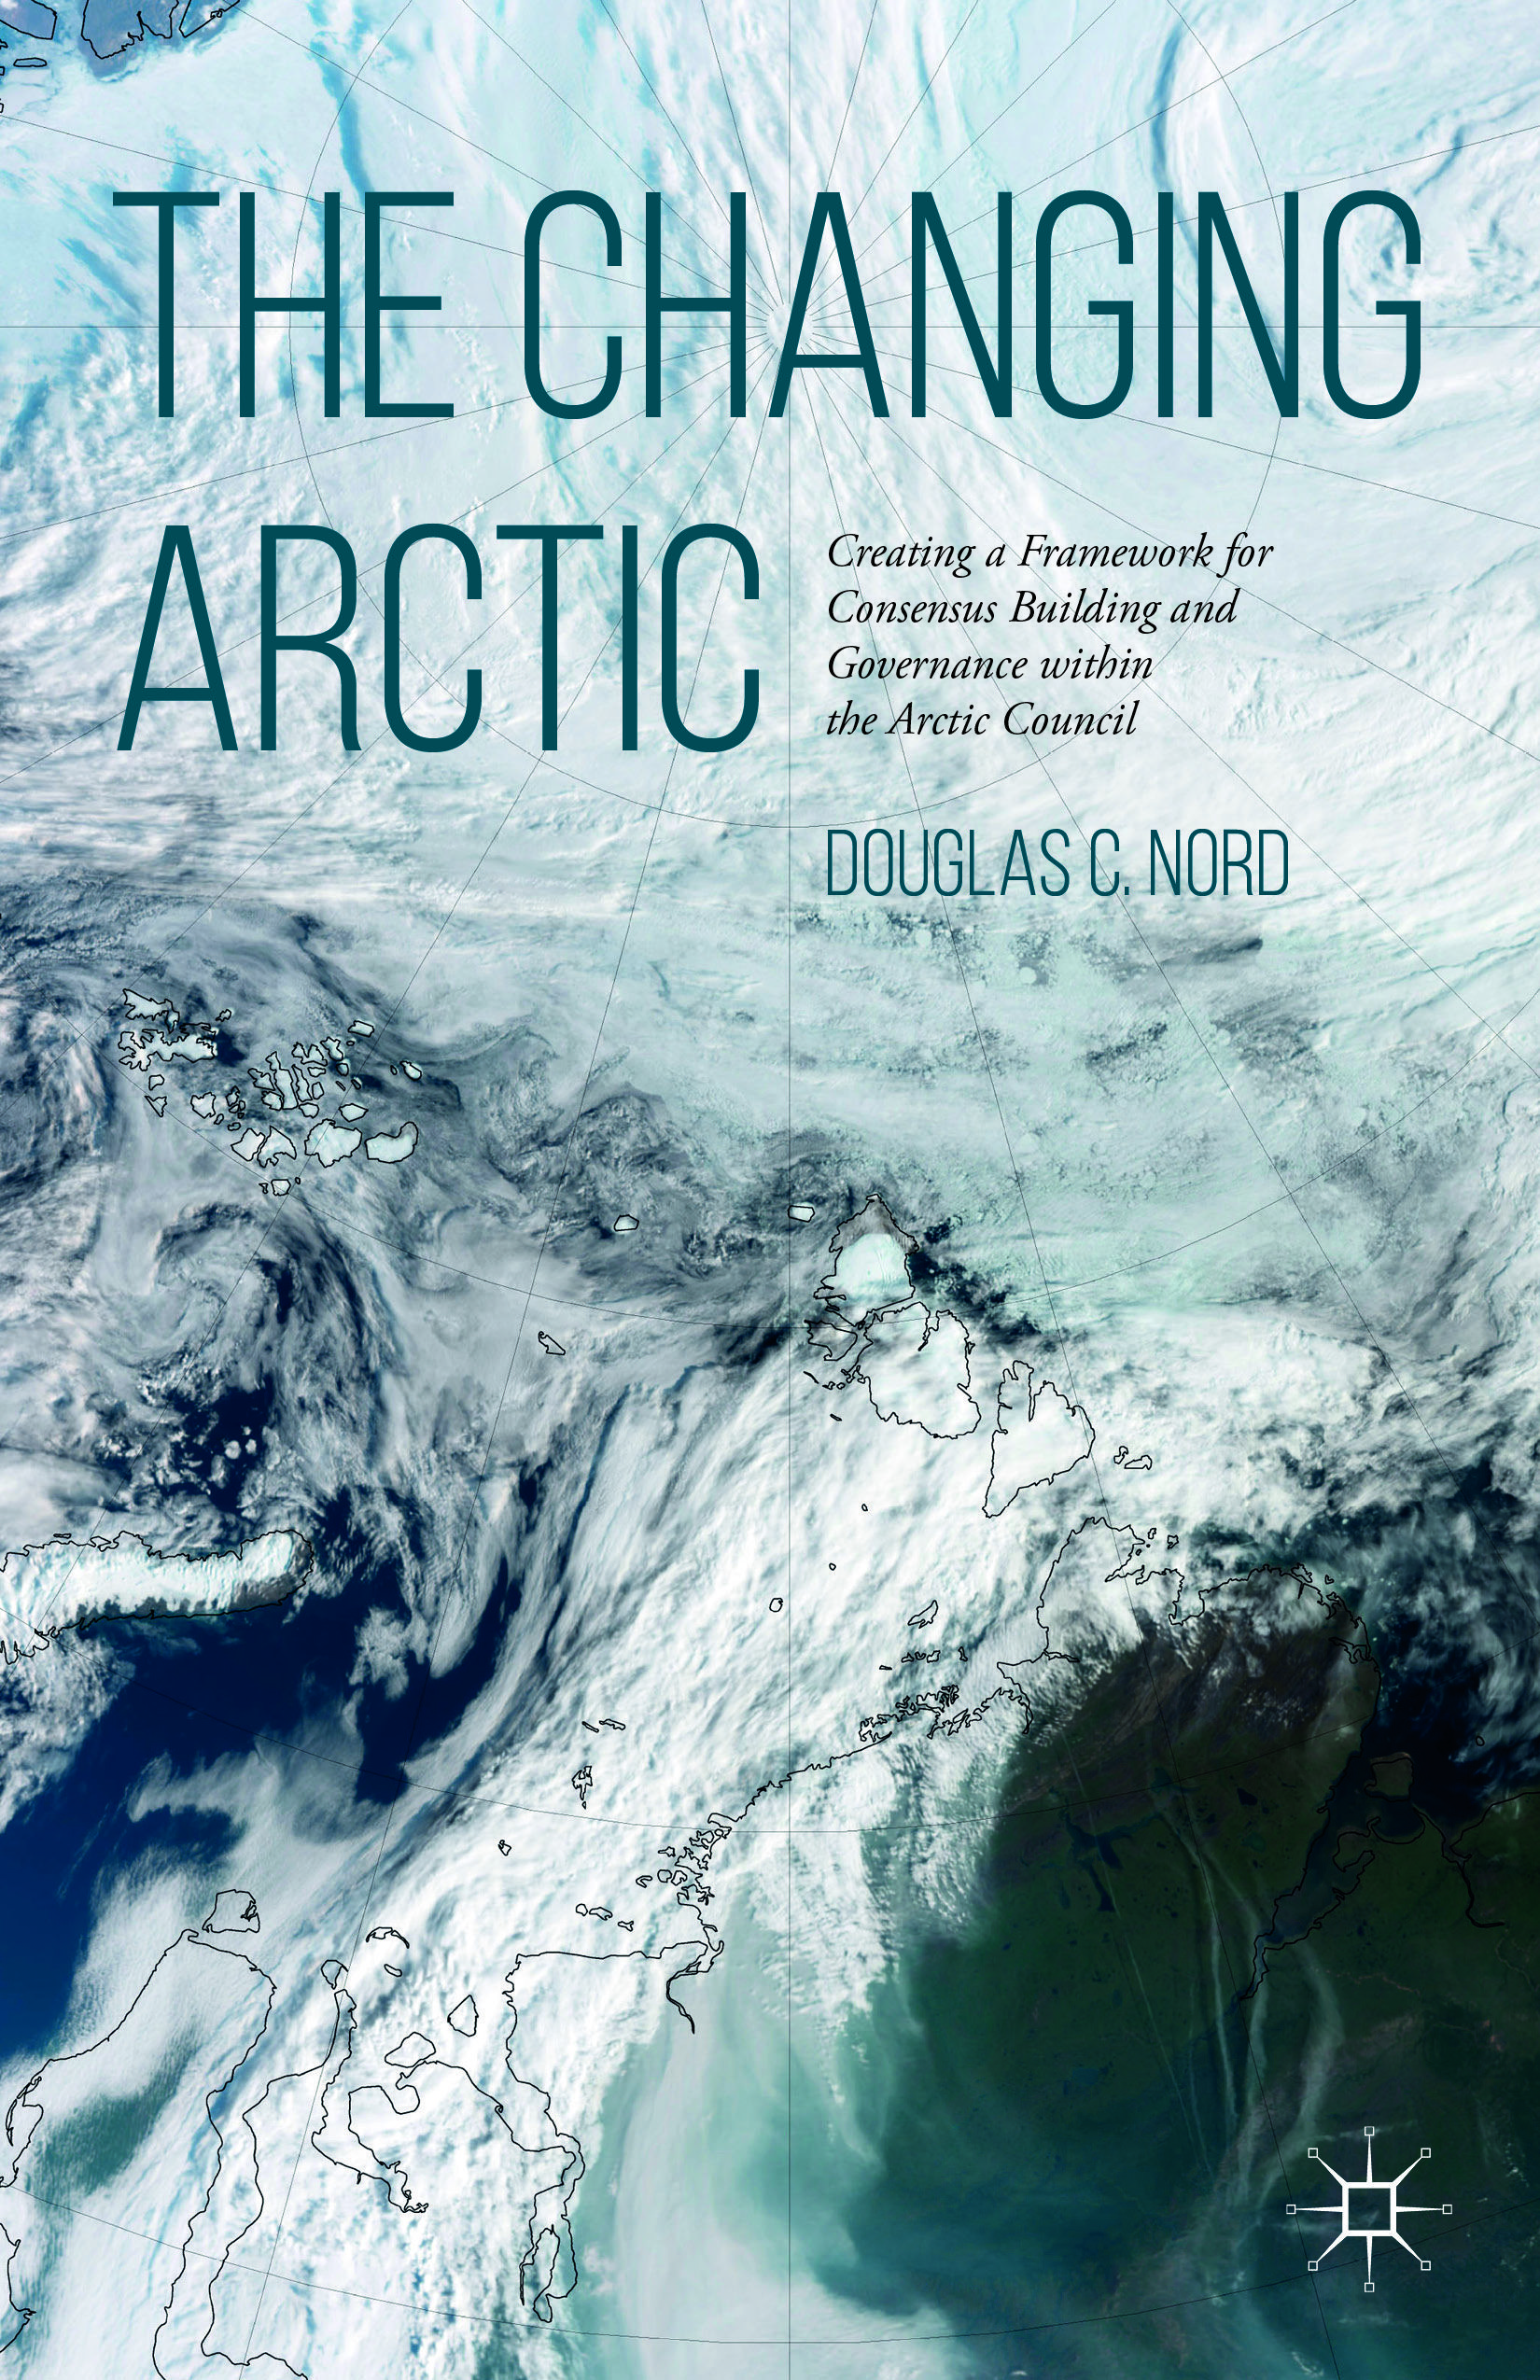 The Changing Arctic book cover ©Palgrave Macmillan